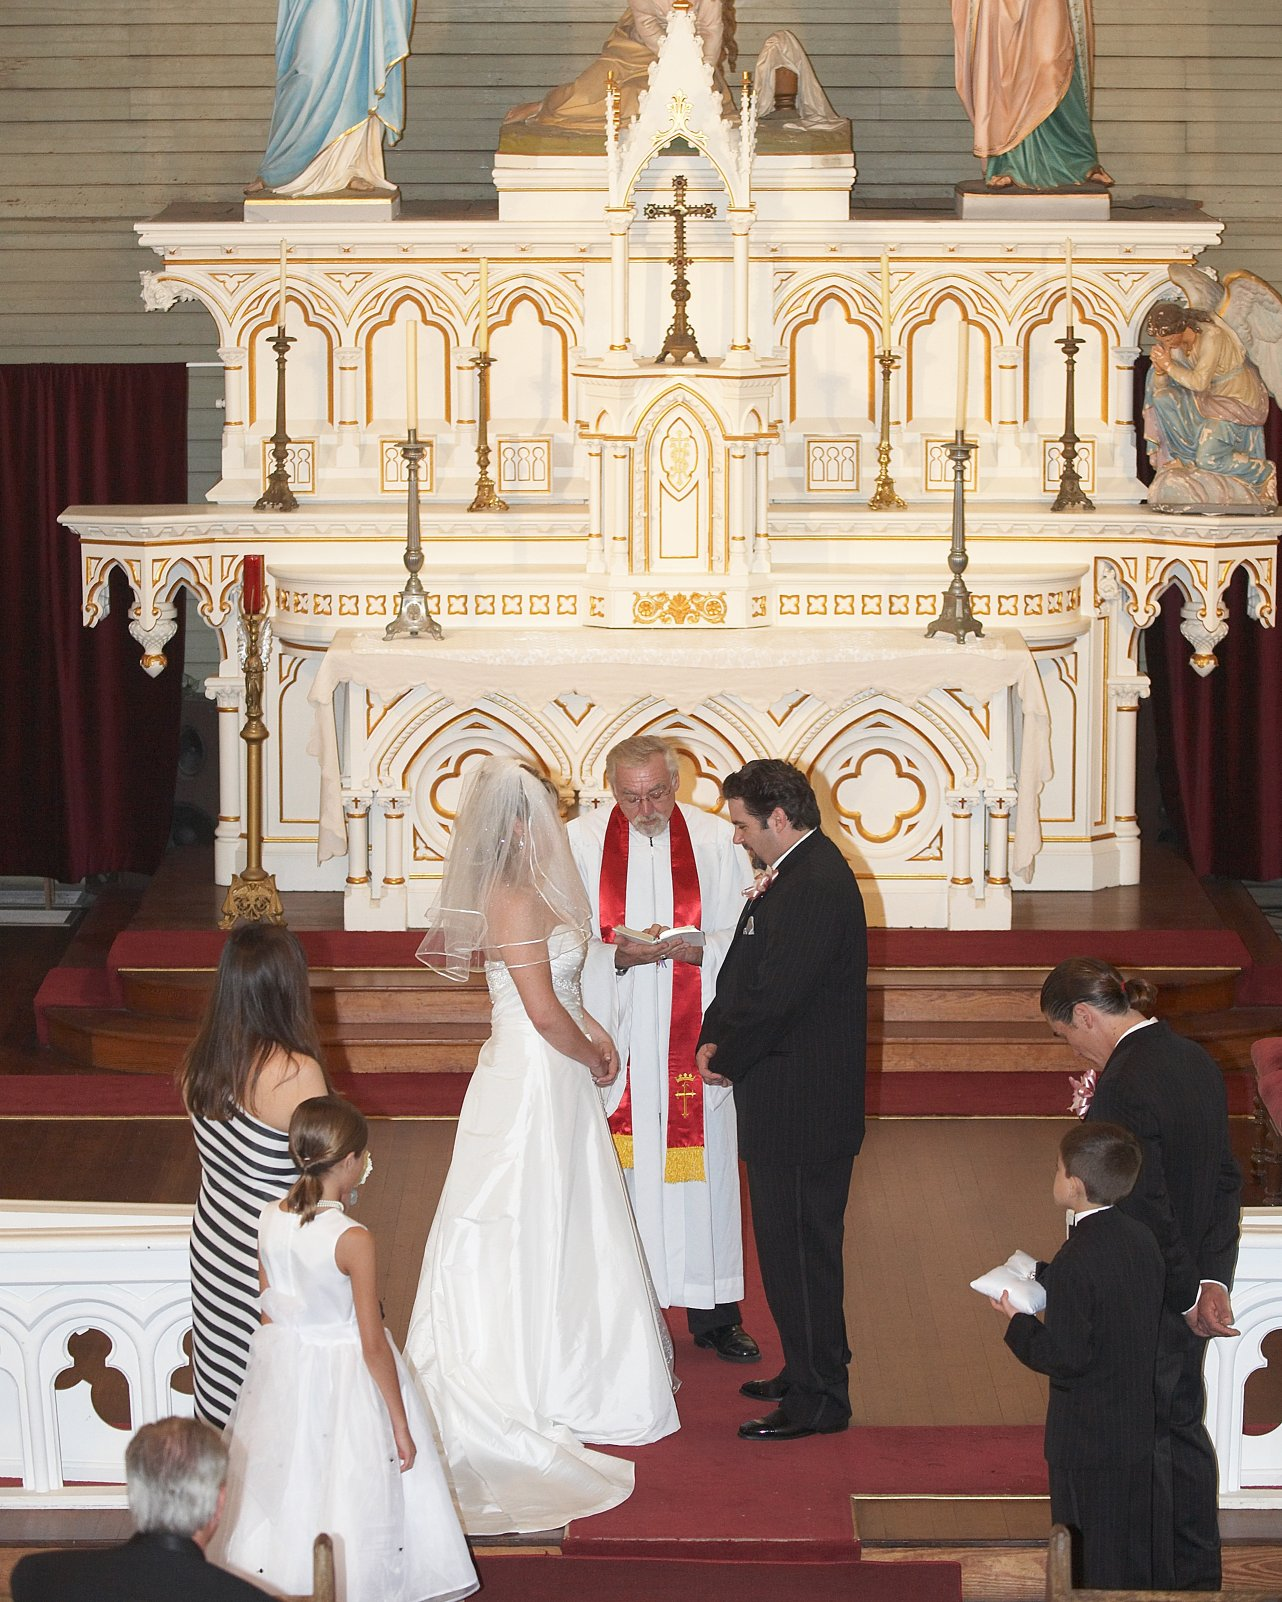 Preacher Wedding Altar: Galveston Island Weddings & Minister